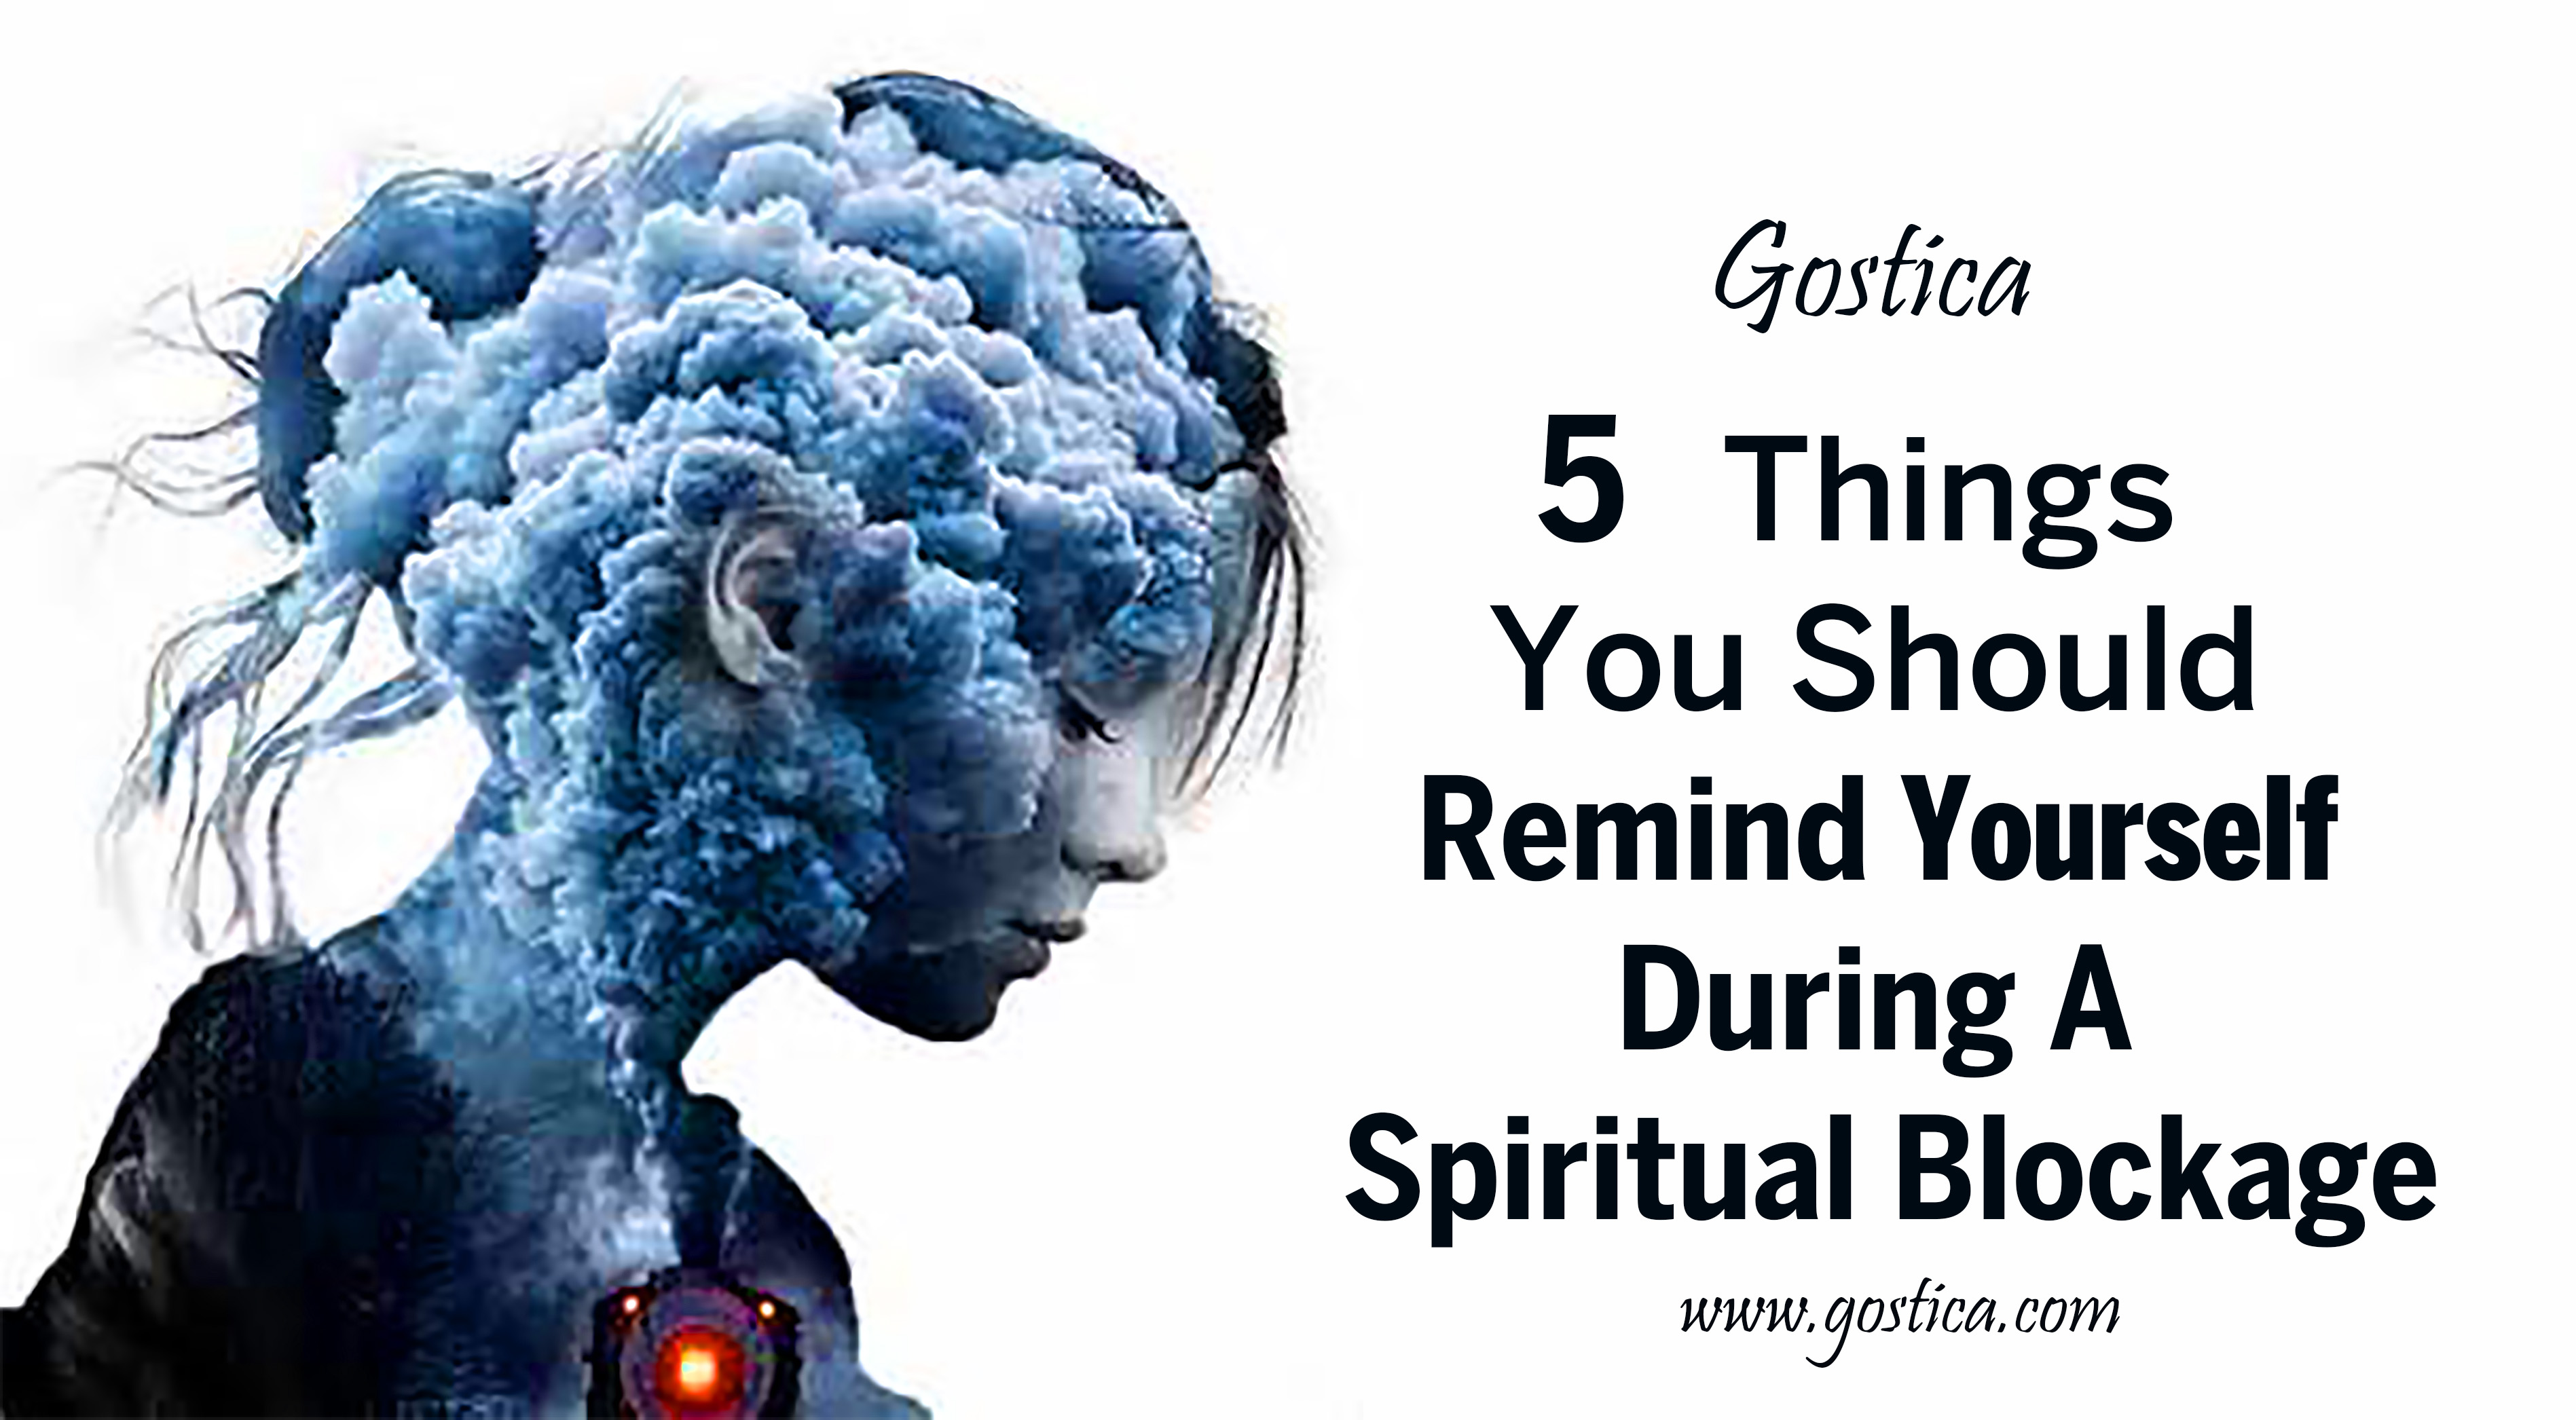 1 / 1 – 5 Things You Should Remind Yourself Of During A Spiritual Blockage 1.jpg